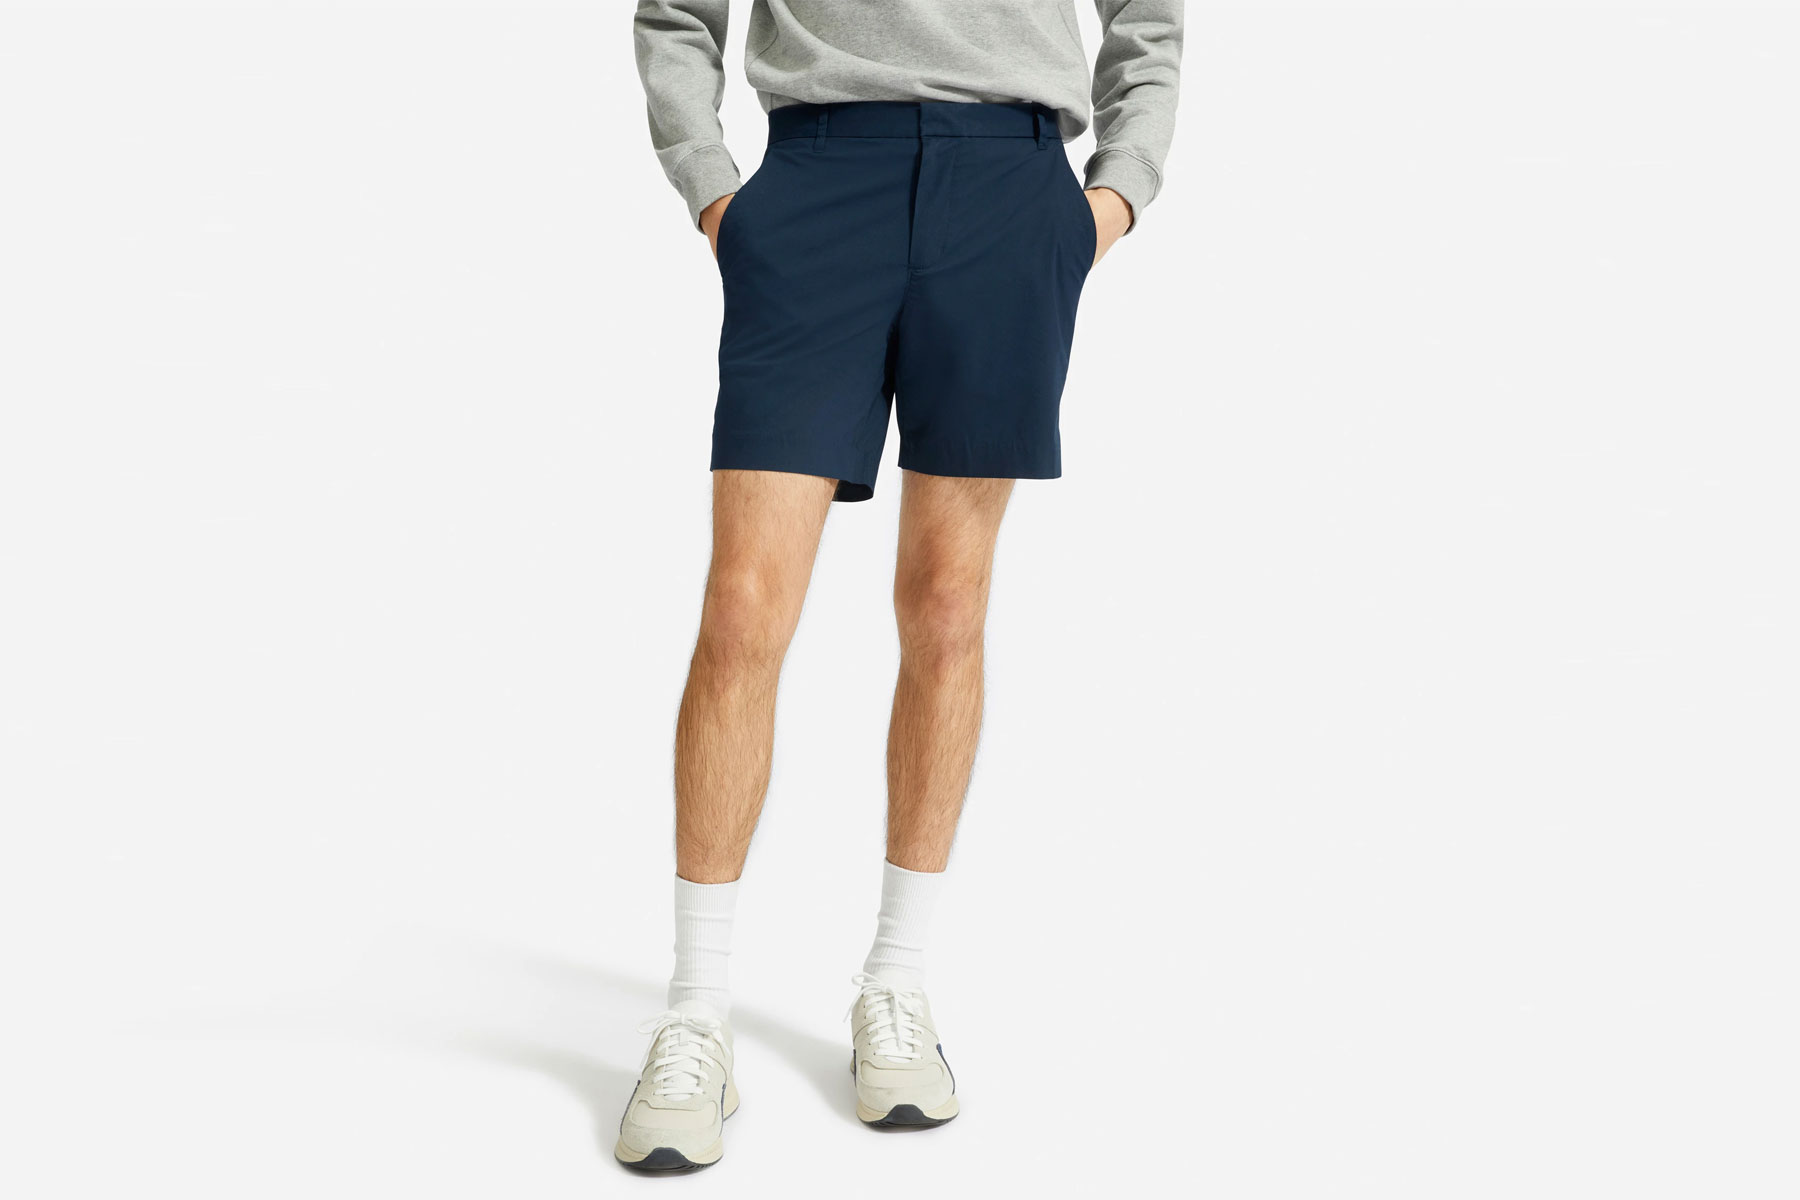 Mens navy shorts